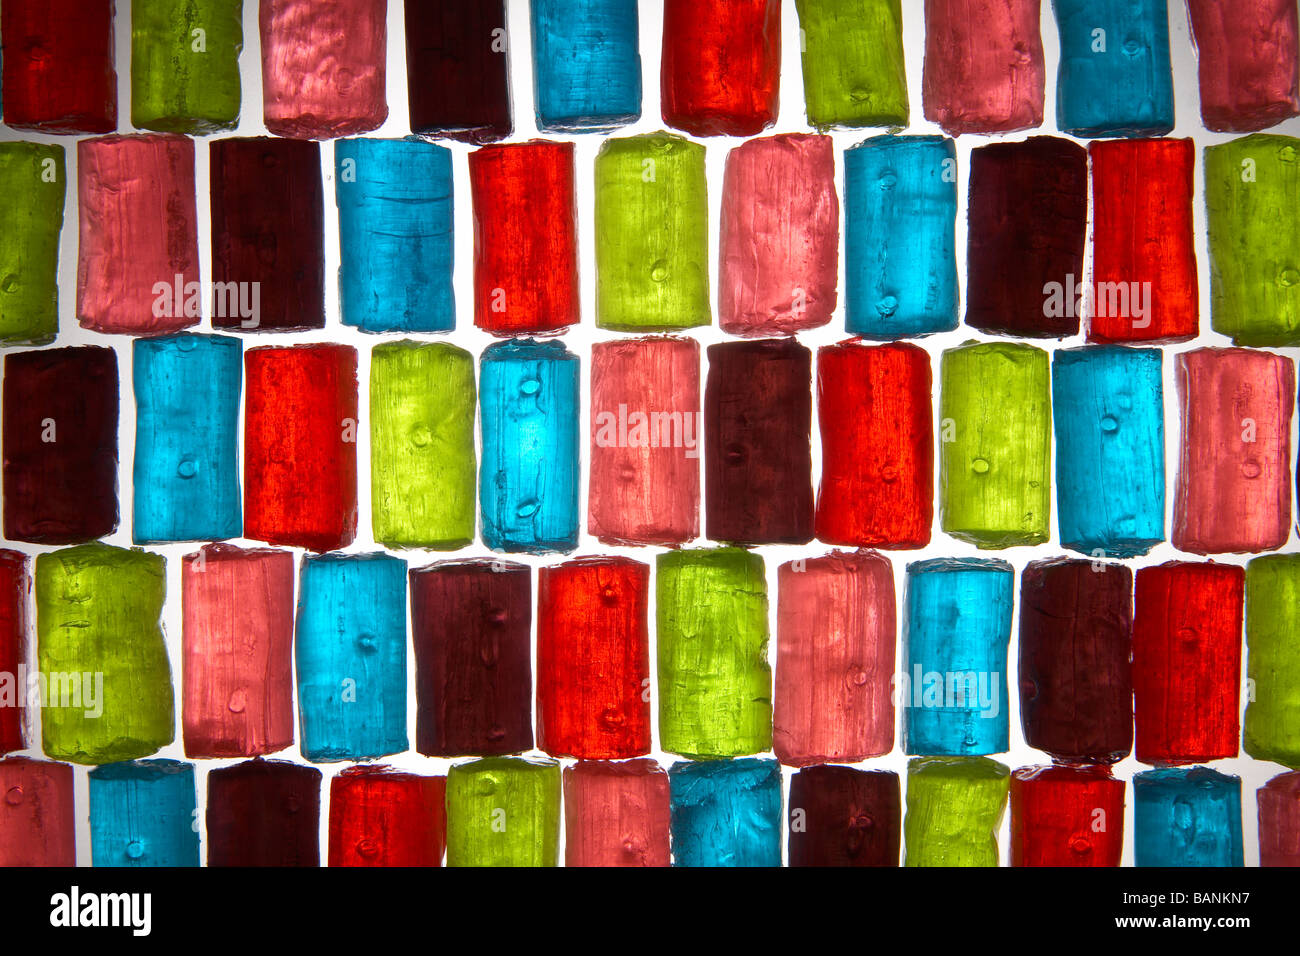 brightly colored translucent rectangular candy in row pattern - Stock Image